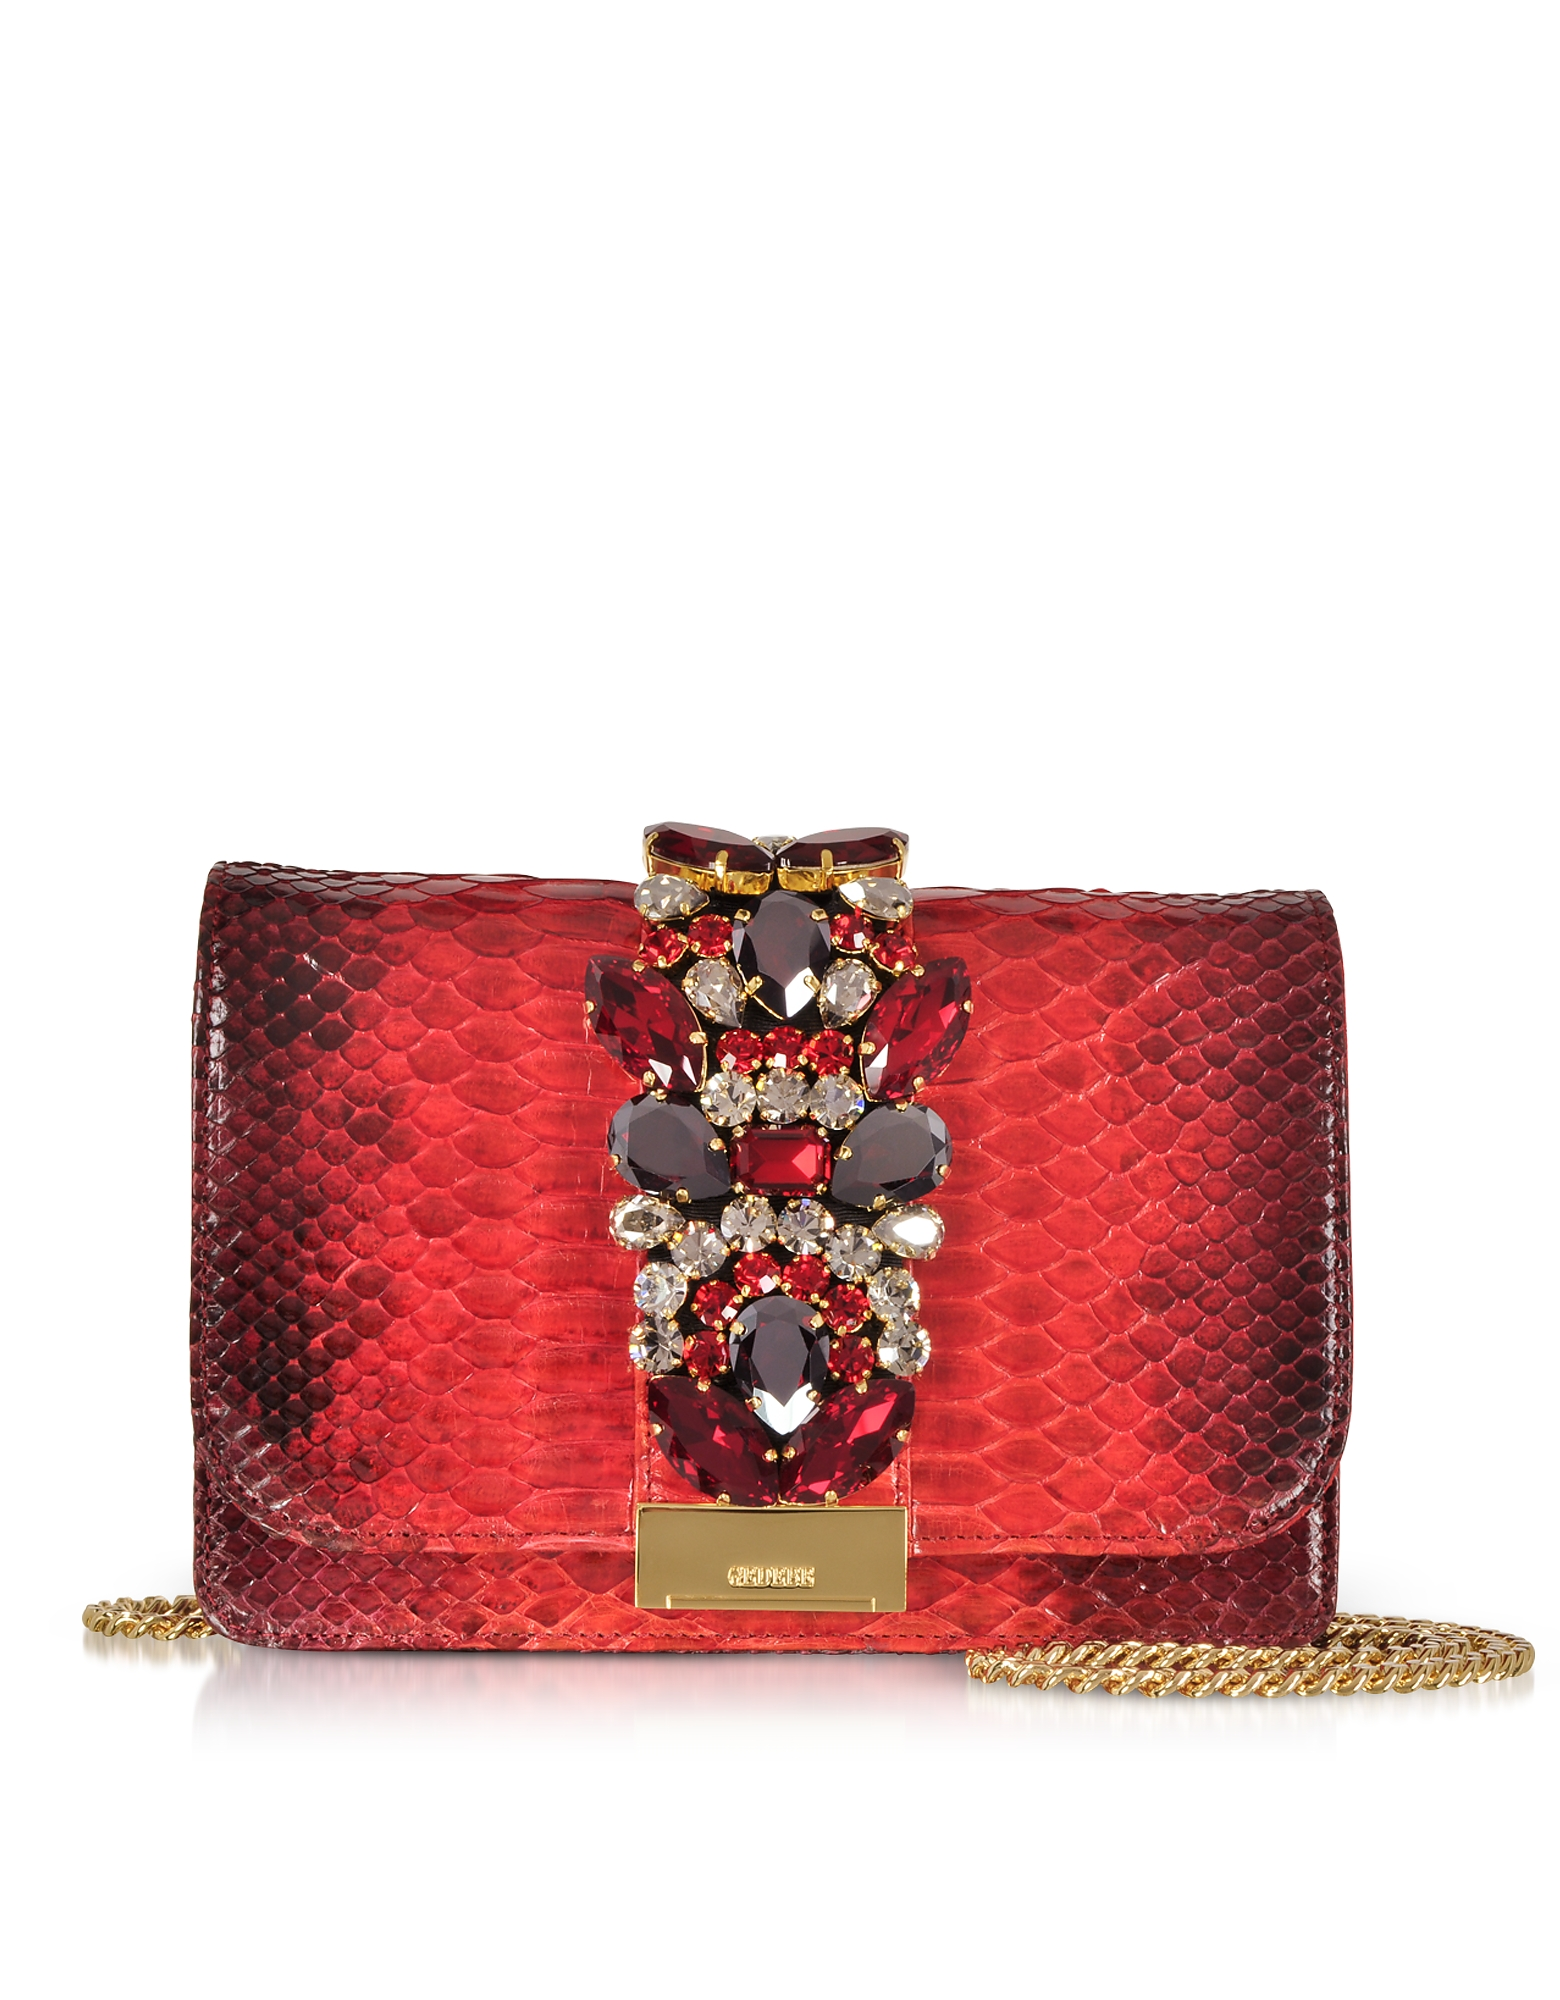 Gedebe CLIKY RED SHADOW PYTHON CLUTCH W/CRYSTALS AND CHAIN STRAP